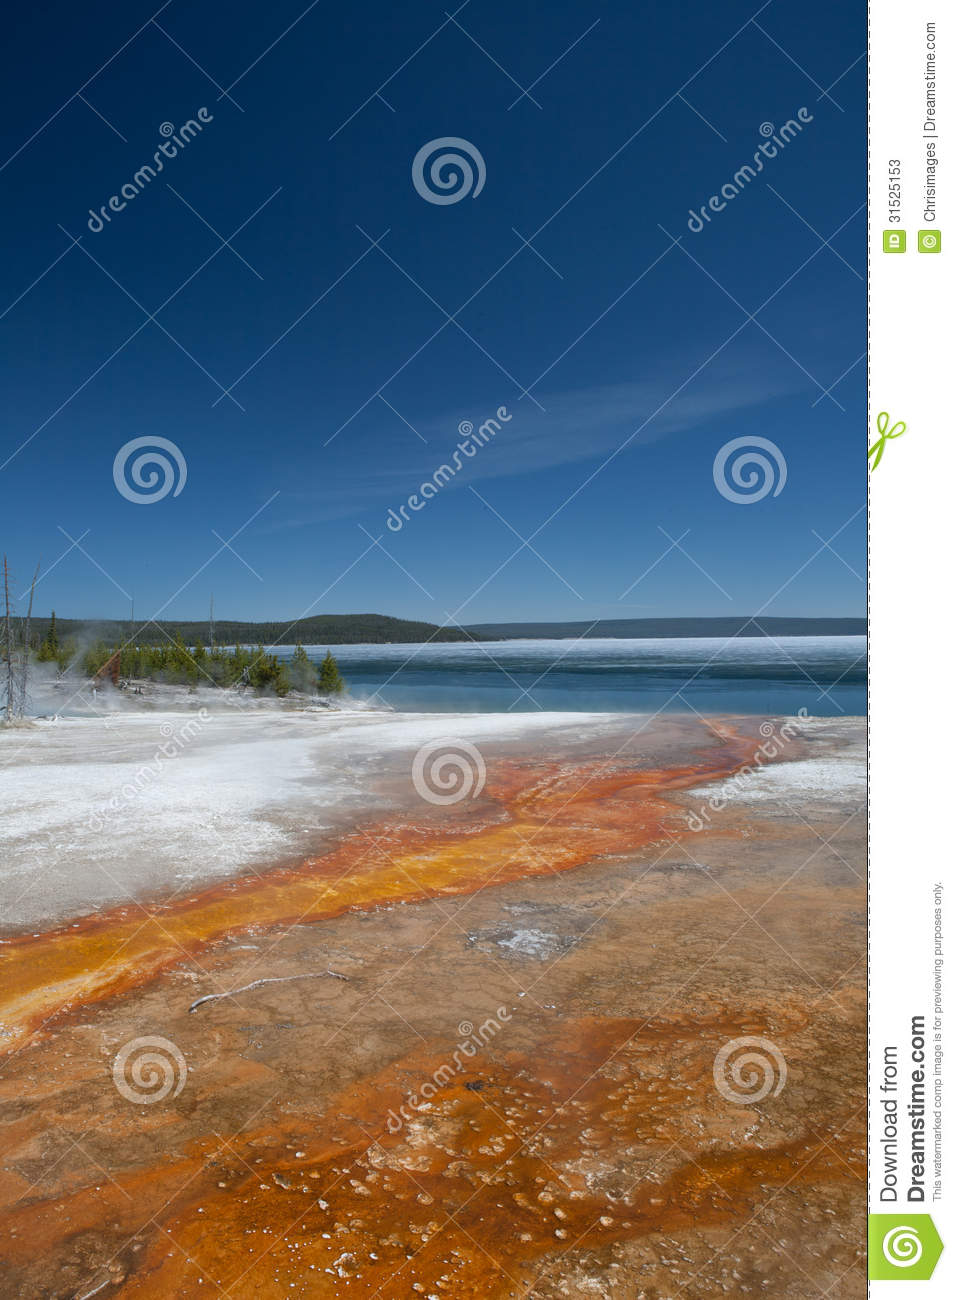 - yellowstone-lake-acide-water-going-to-national-park-wyoming-usa-31525153